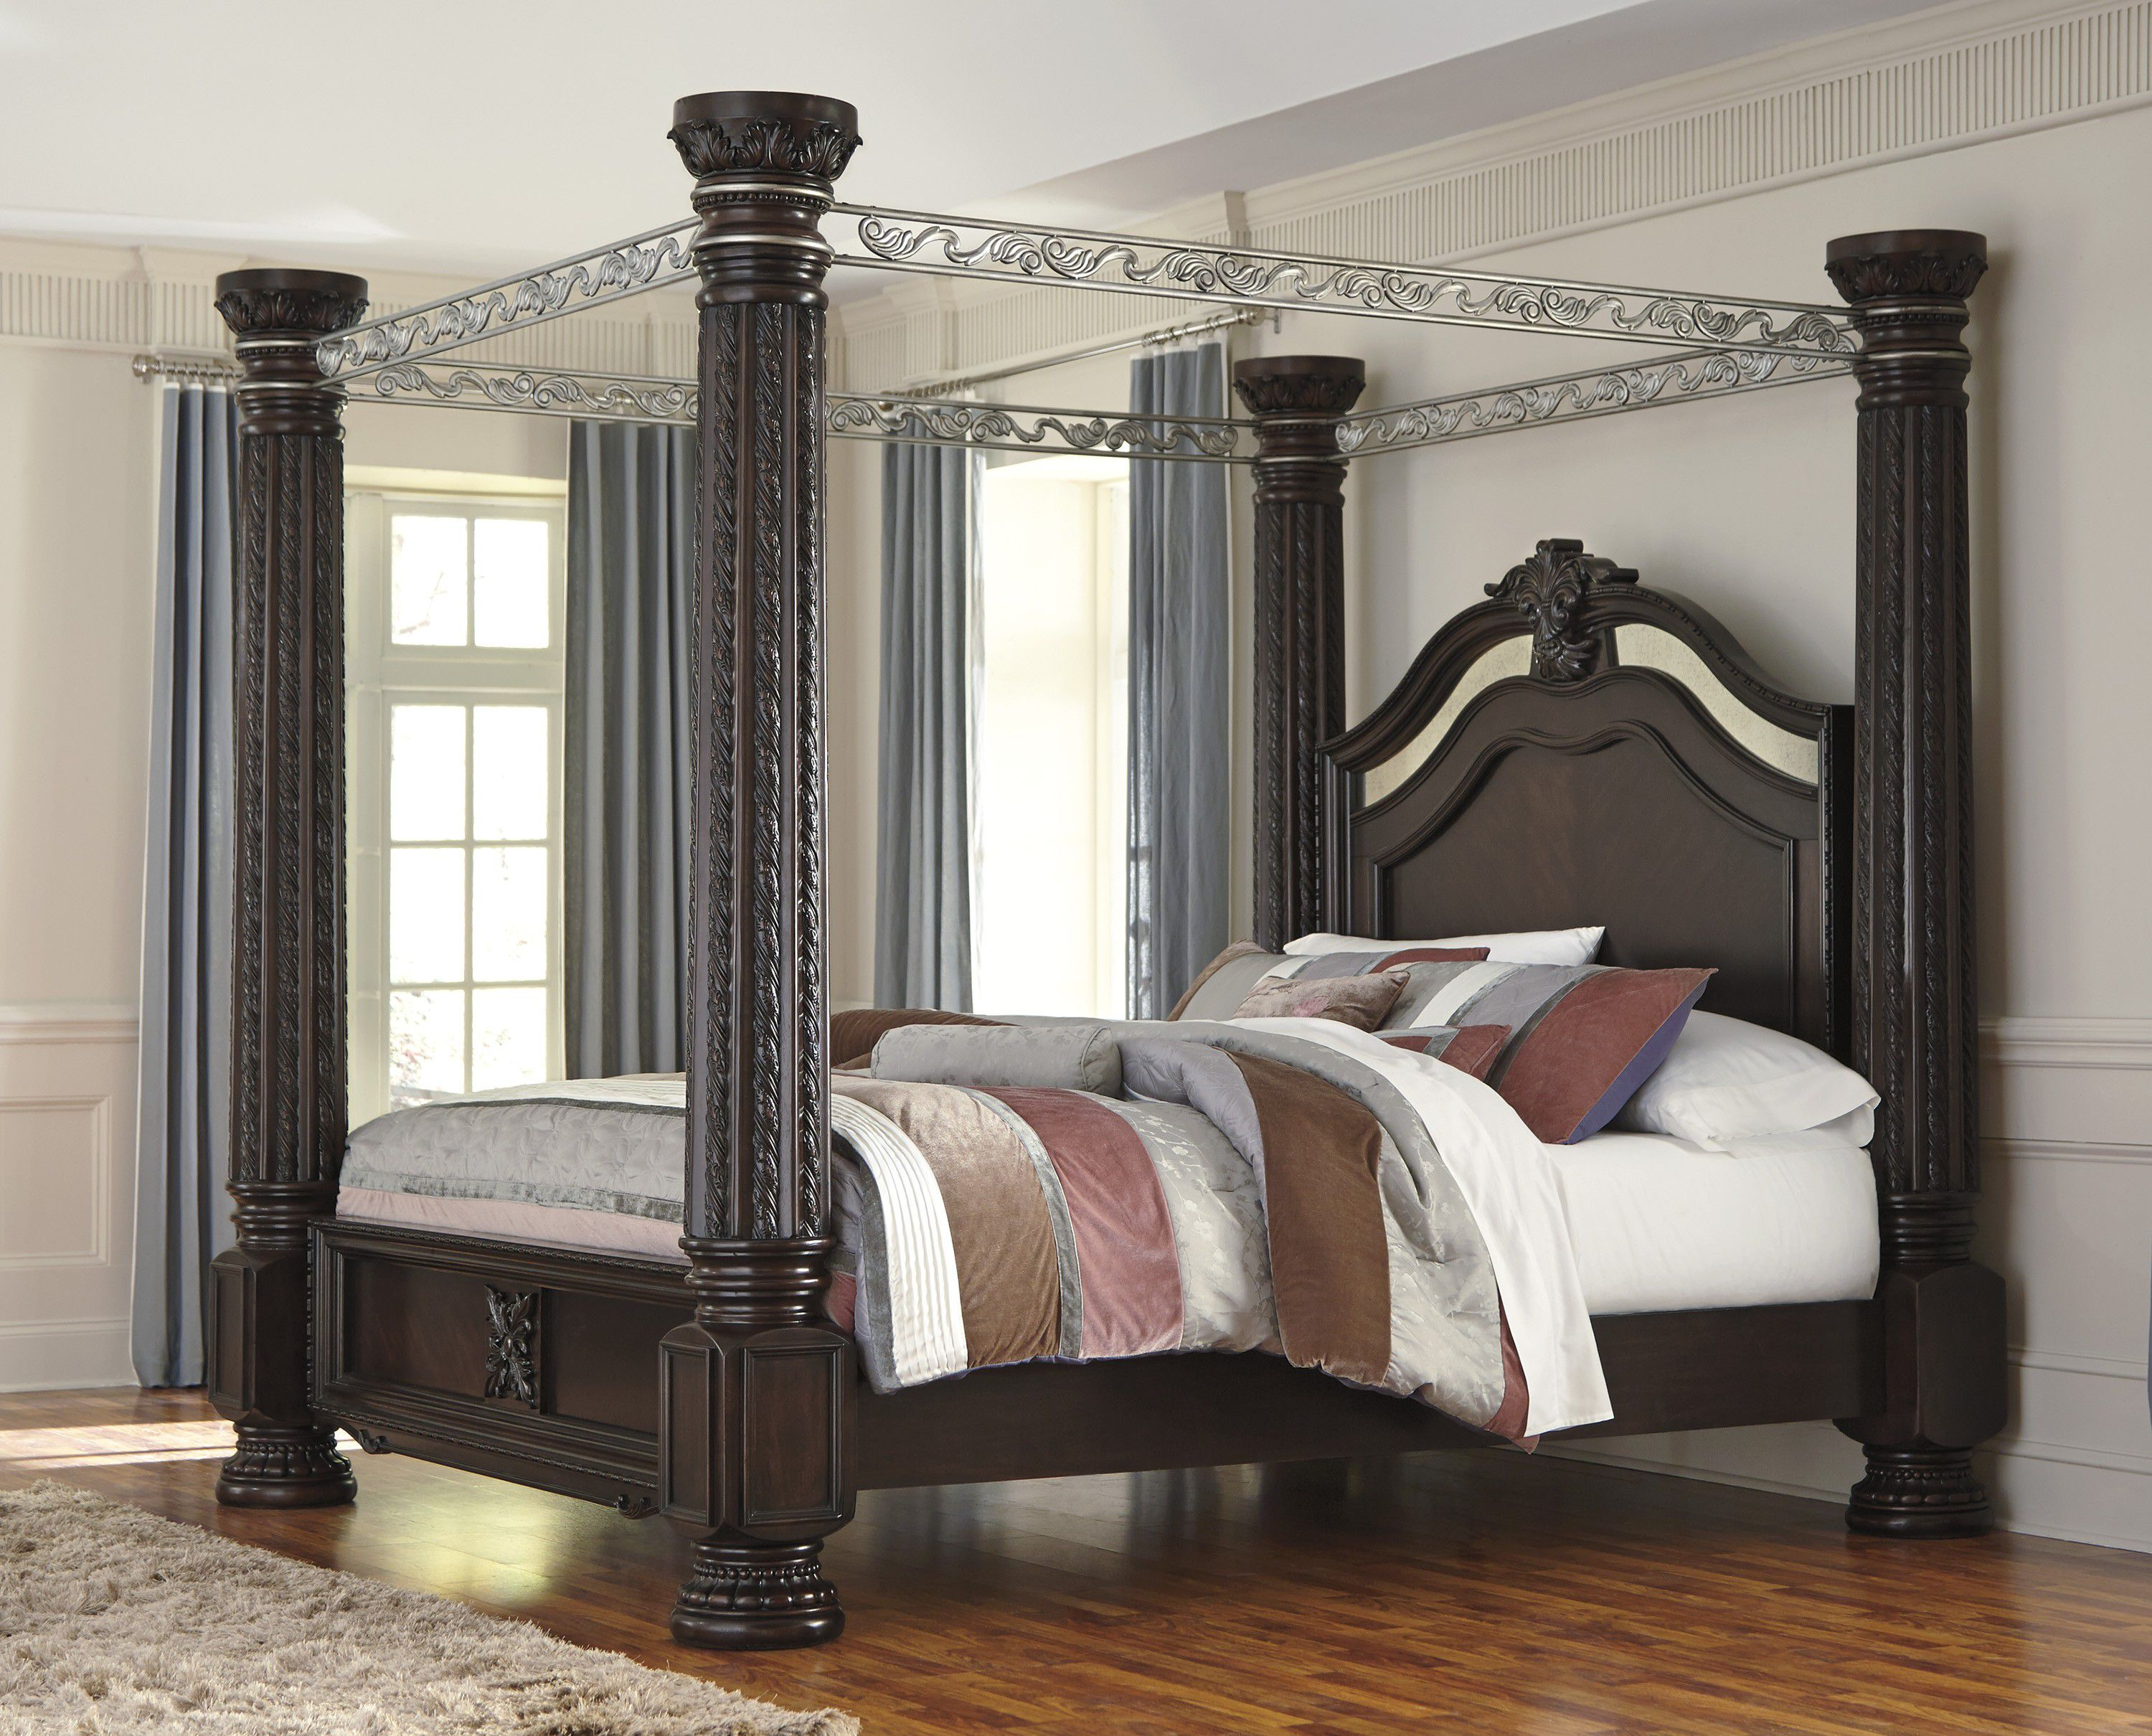 King Canopy Bed Ideas for Creating Stunning Bedroom ...